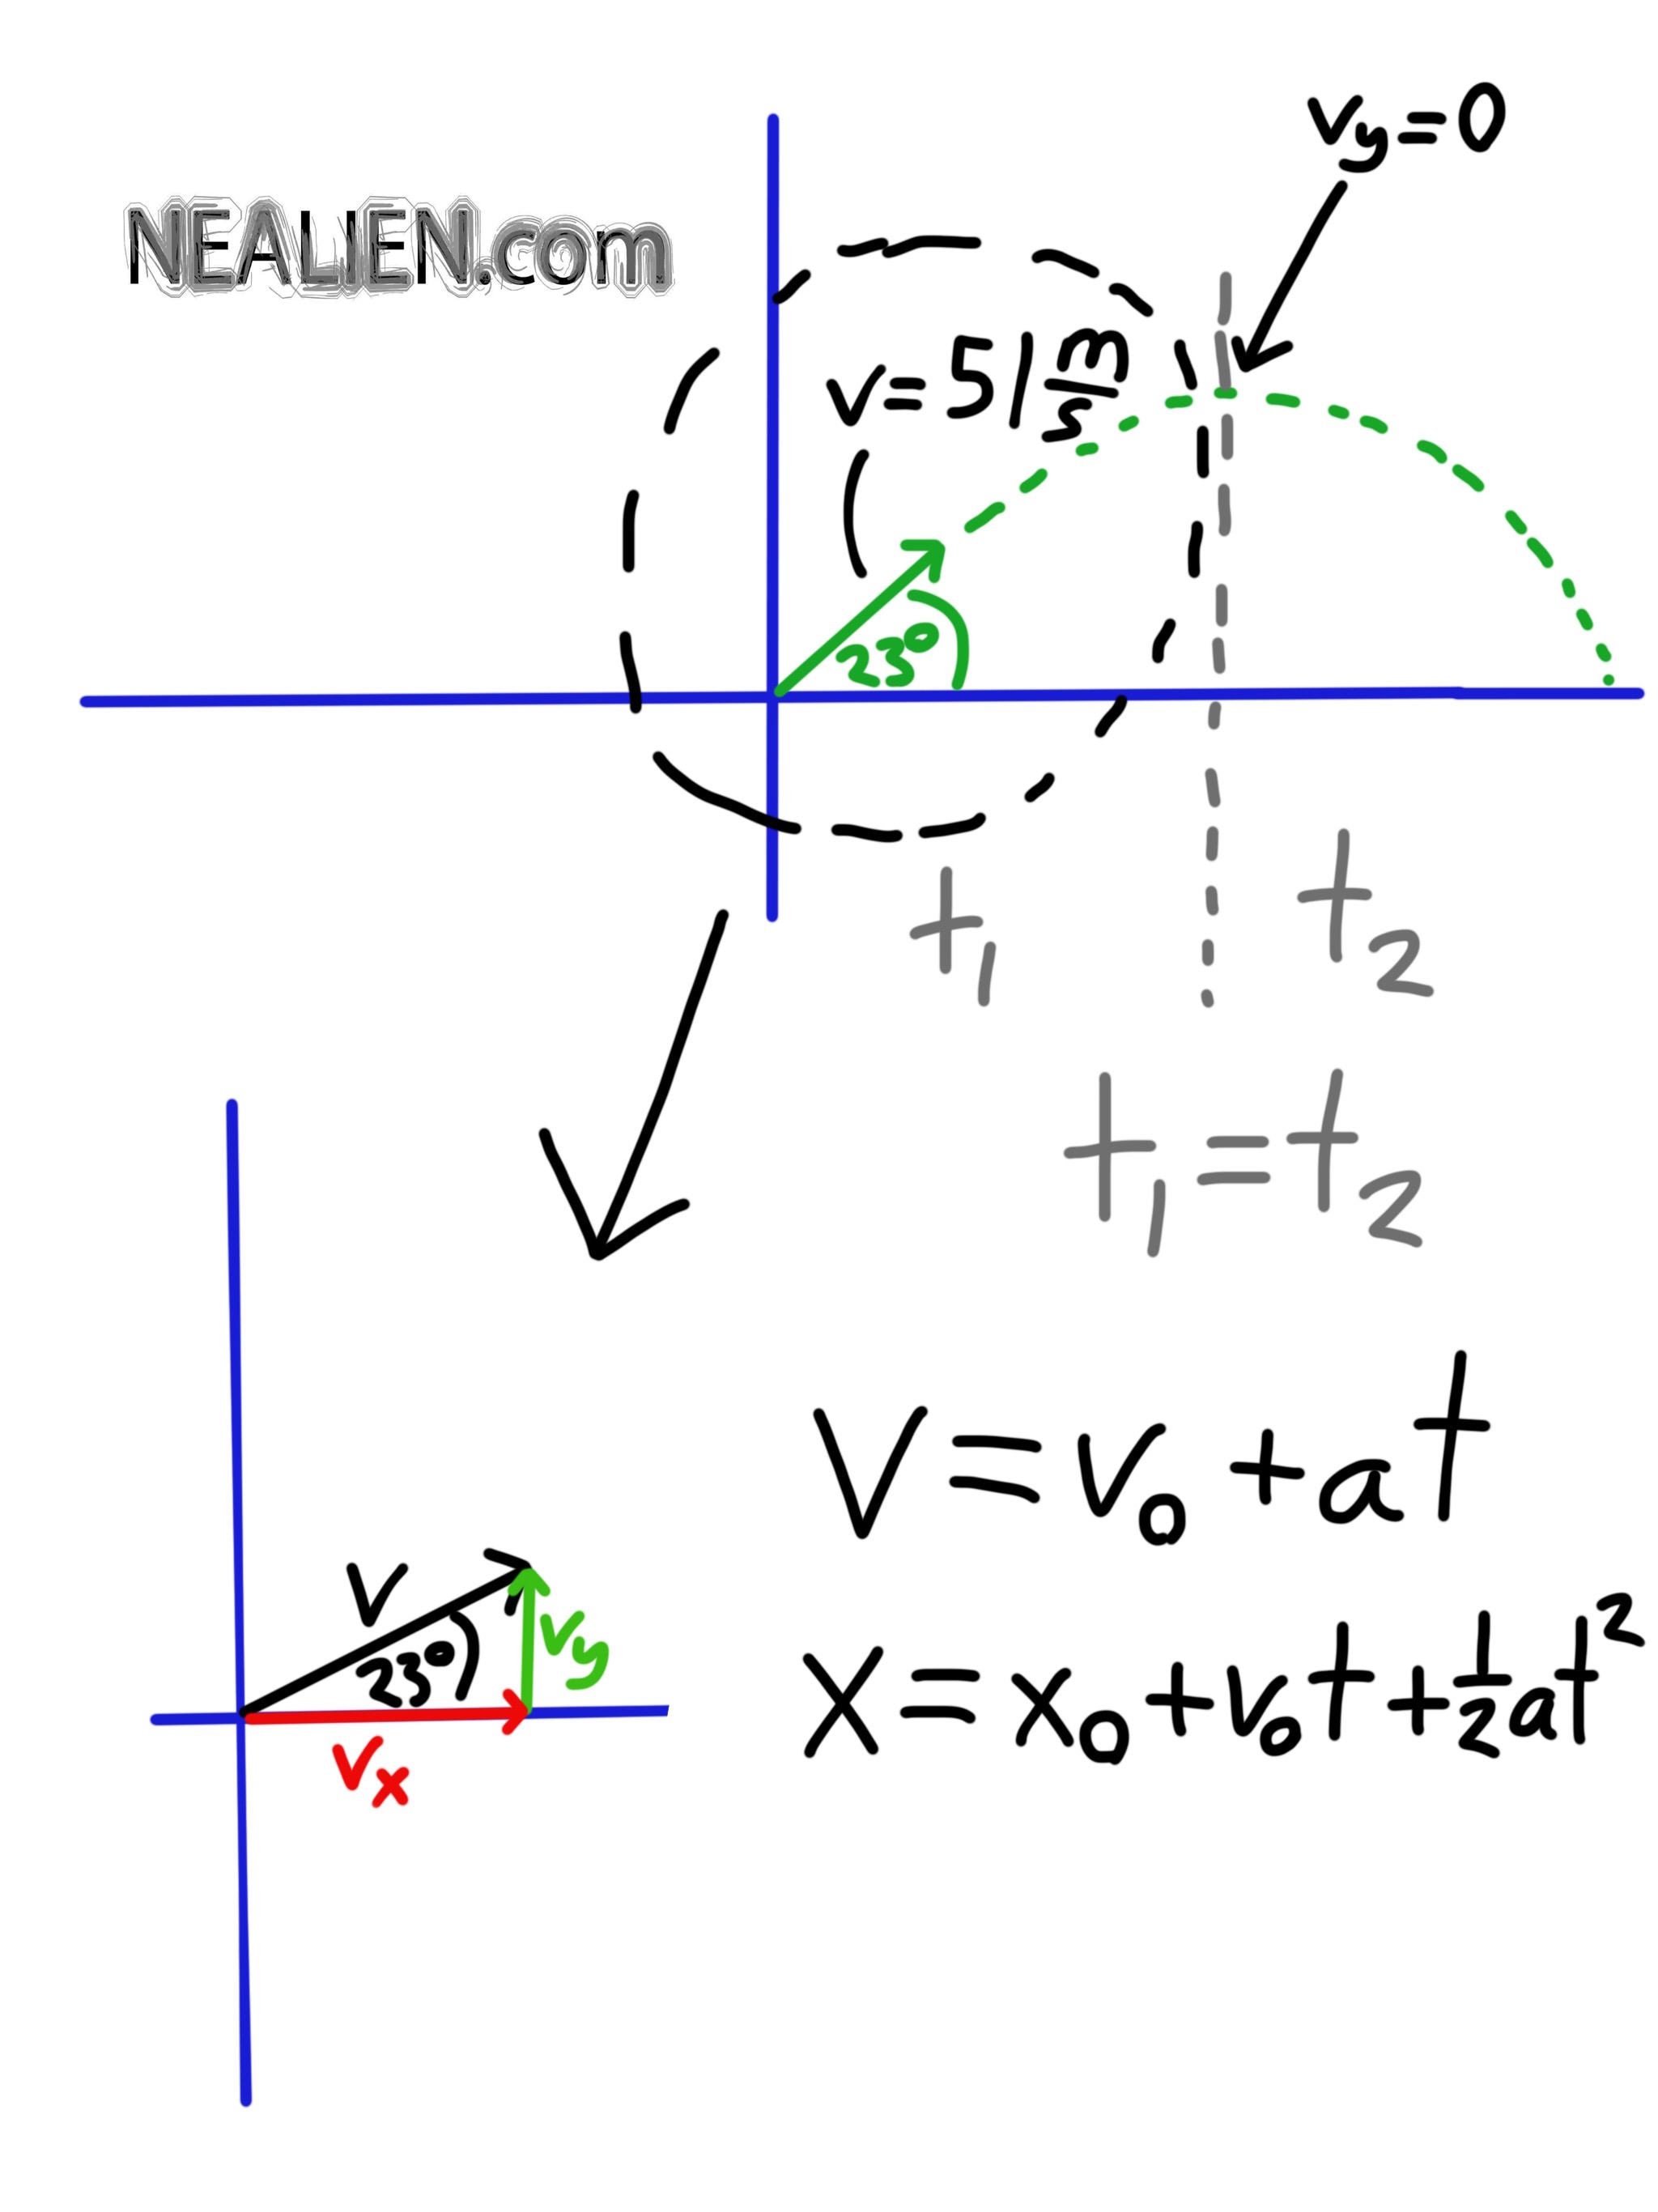 Cannonball Problem Diagram and Equations